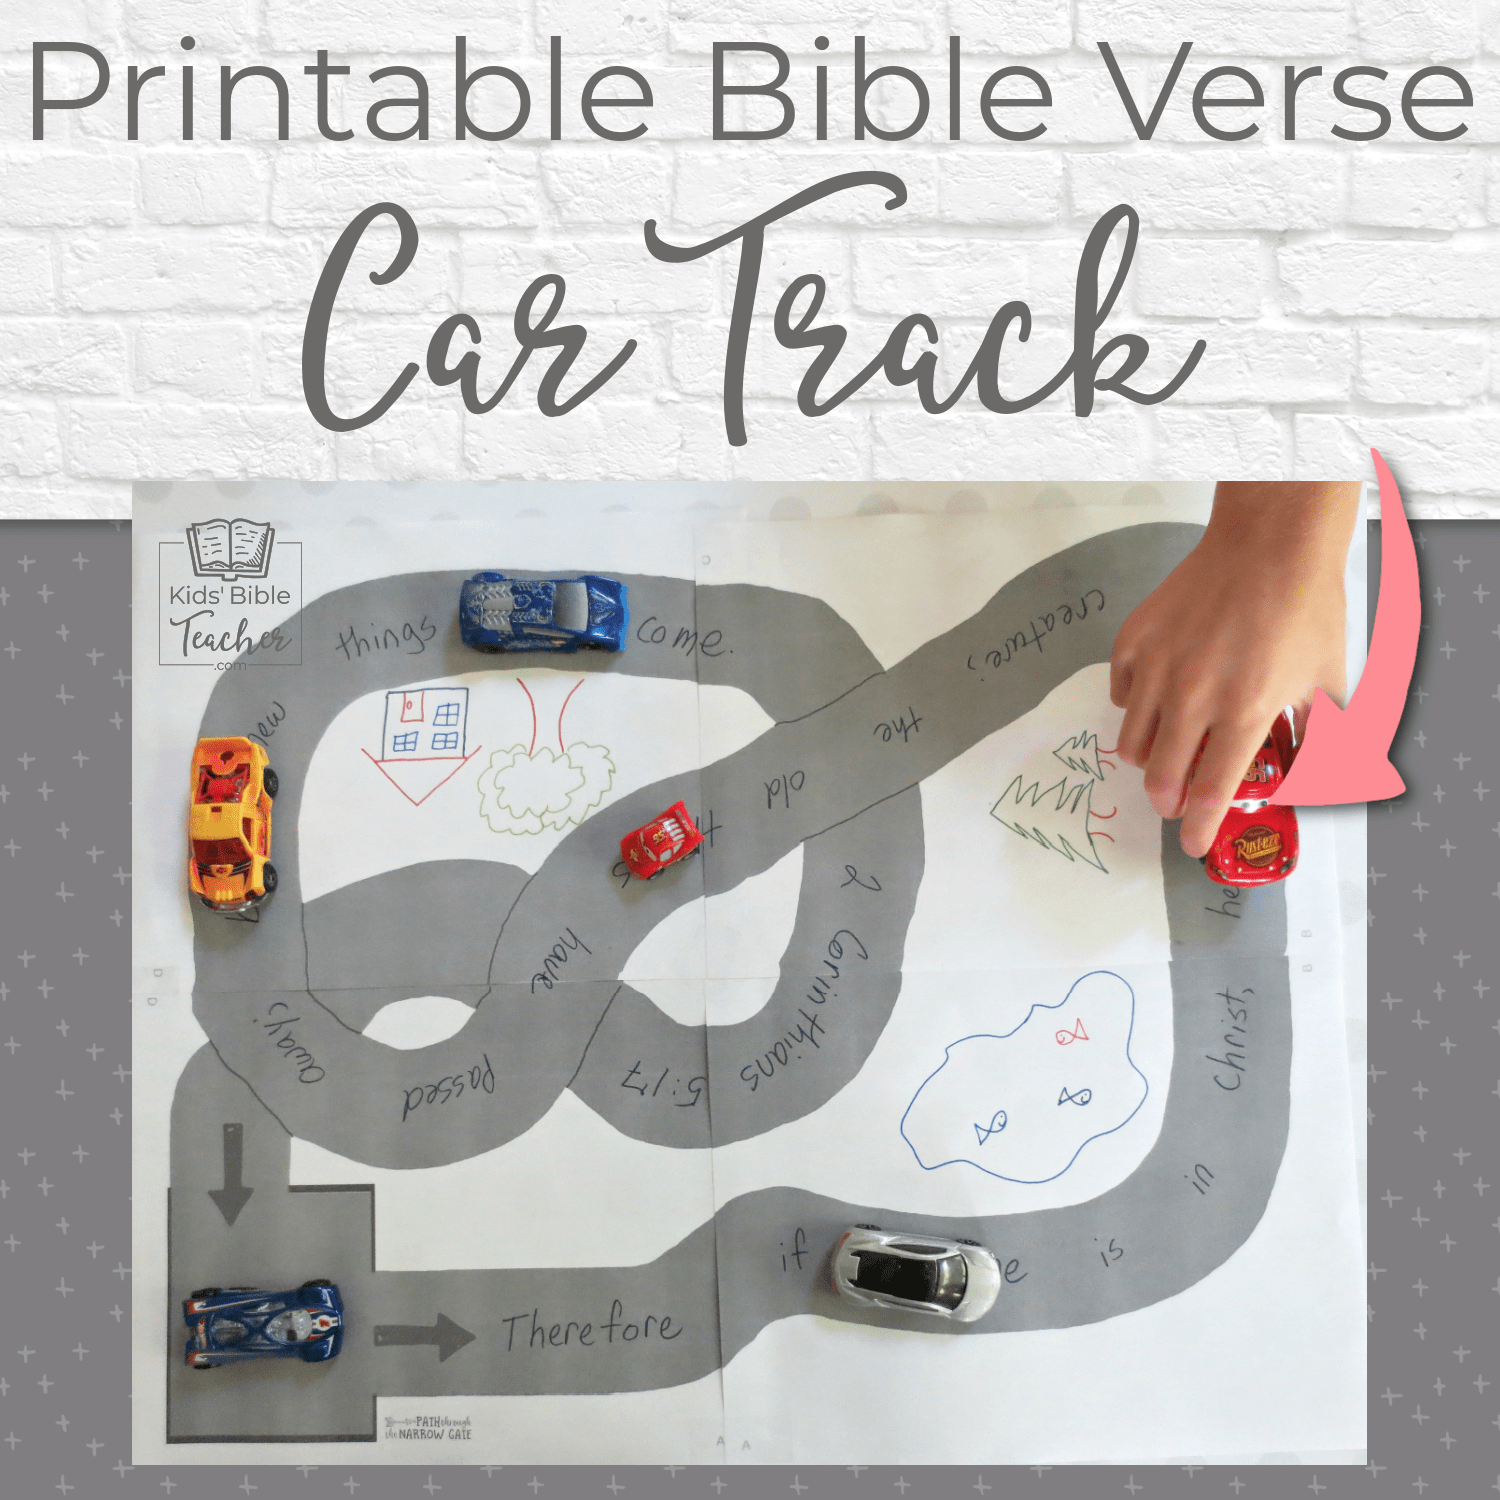 Looking for a super fun yet simple way to help kids memorize Bible verses? This adorable race track is perfect - great for home or Sunday School use.